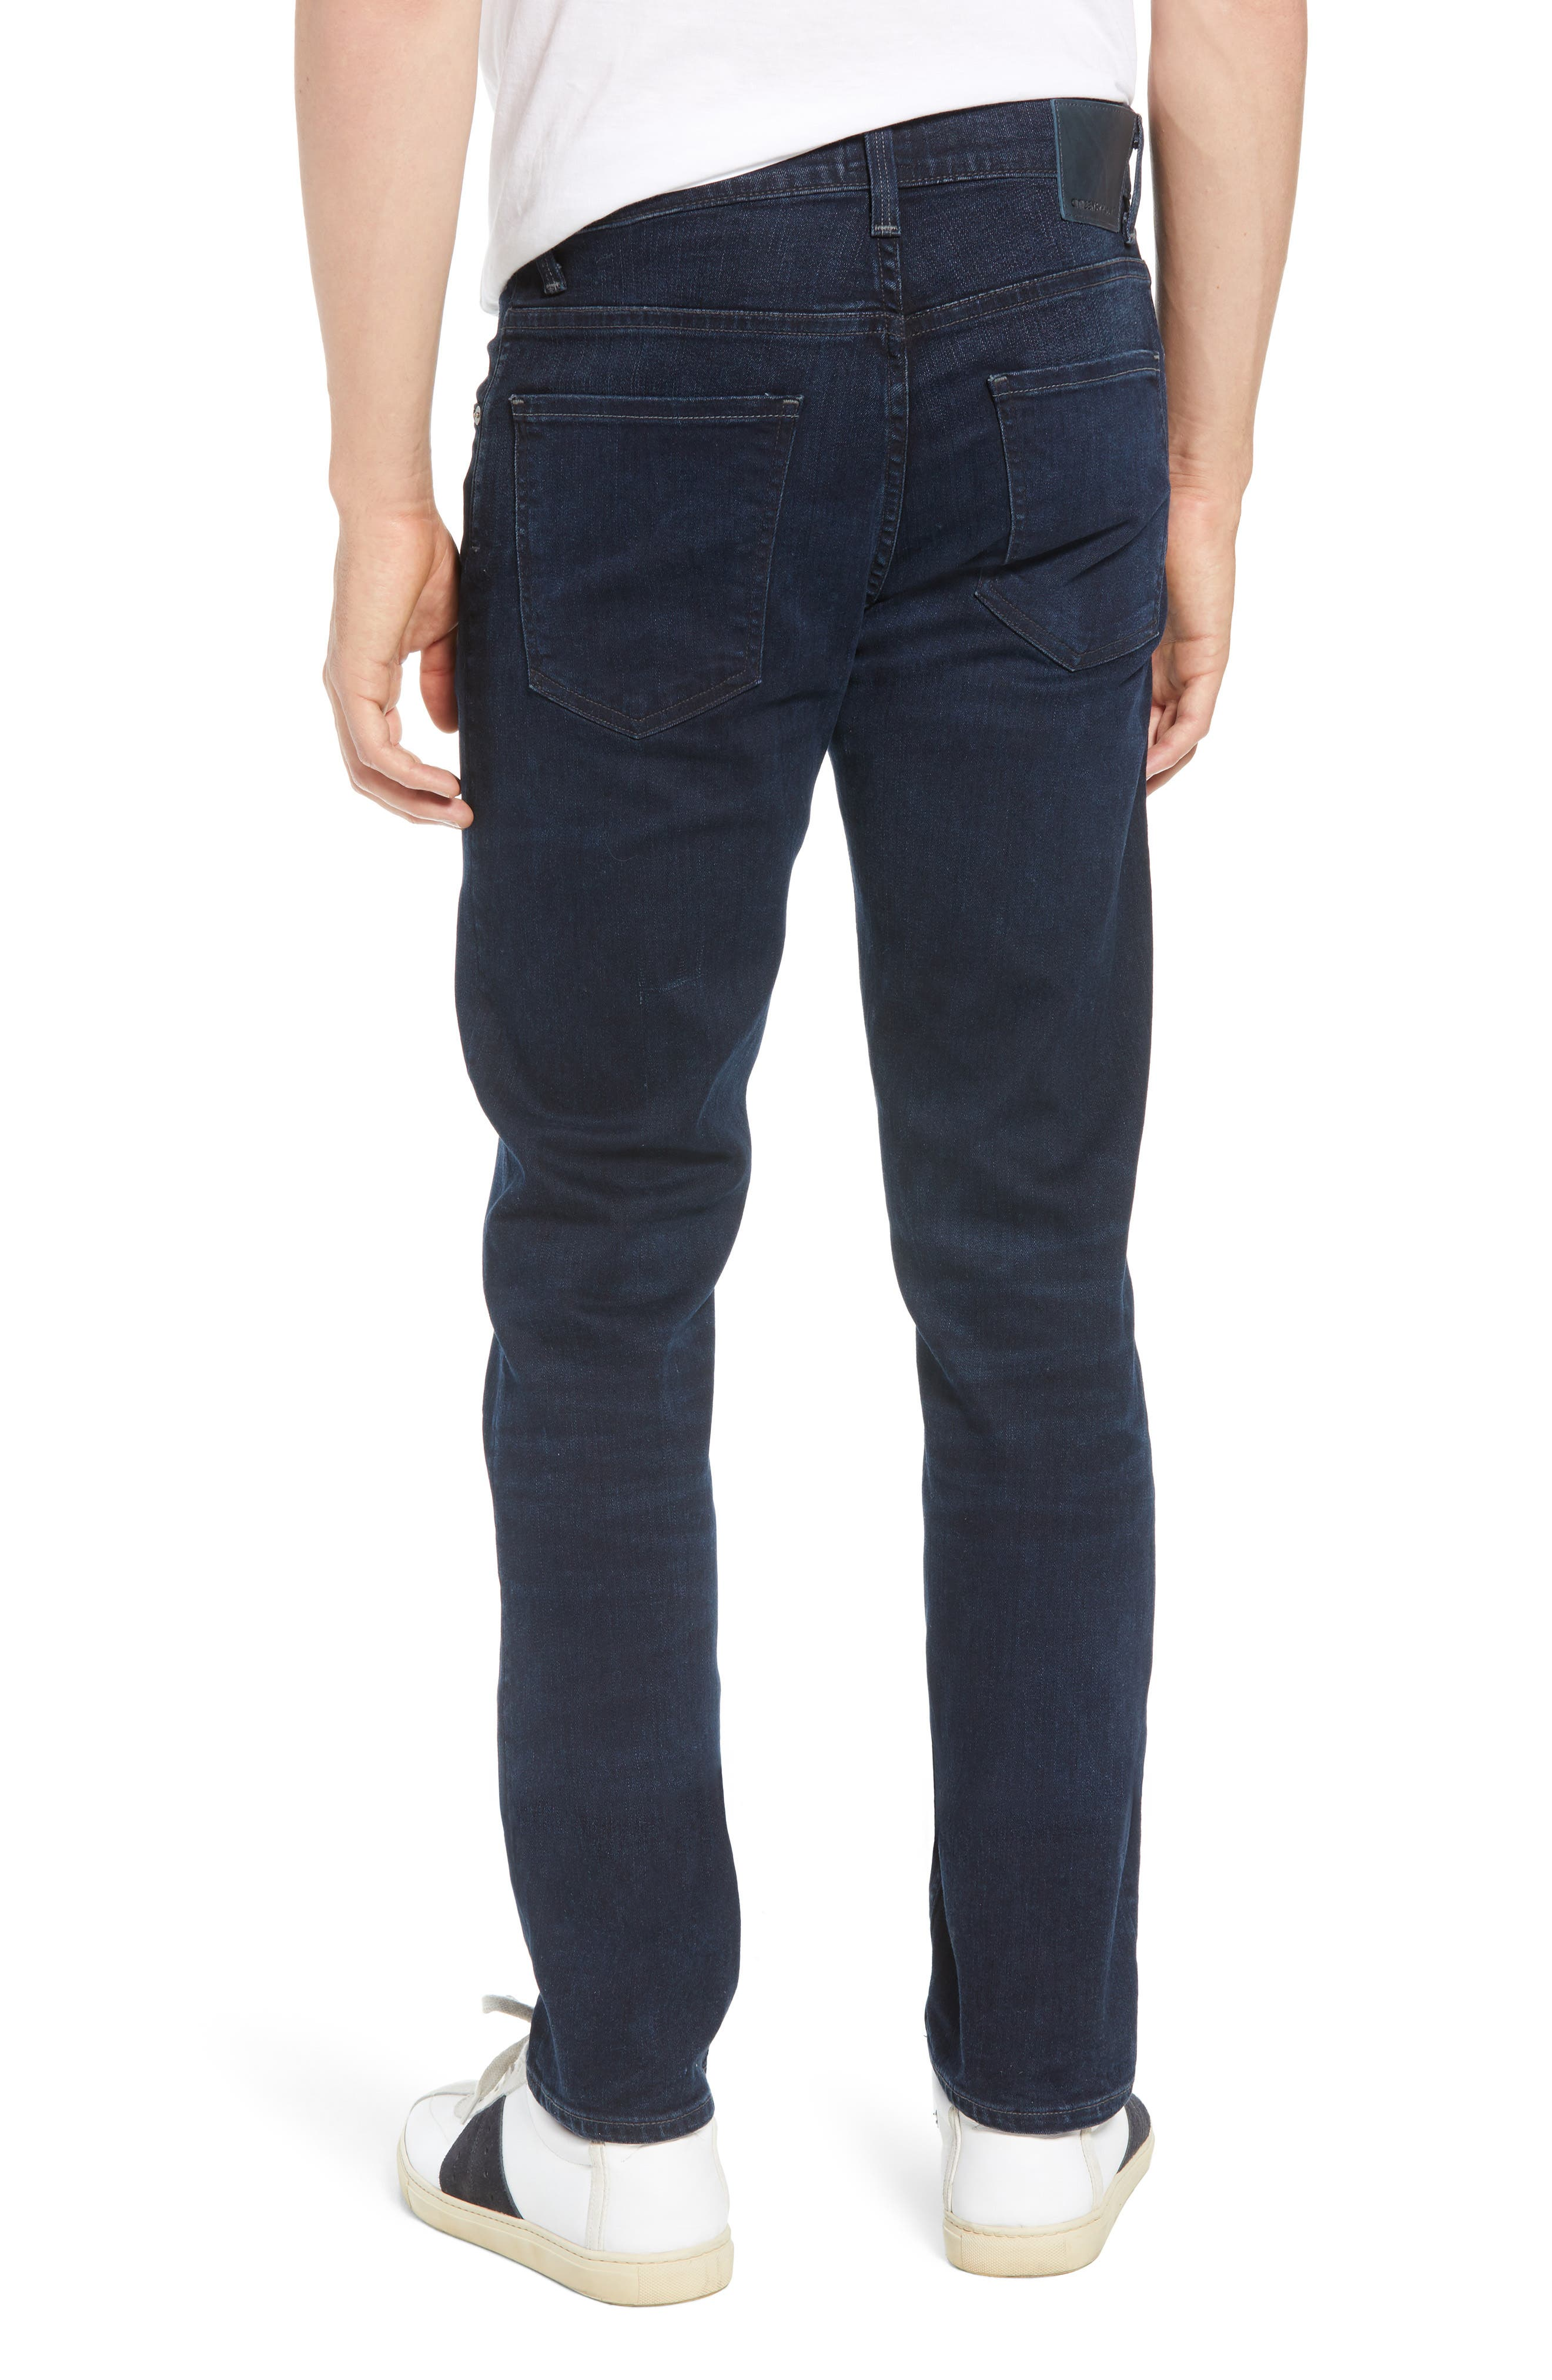 Bowery Slim Fit Jeans,                             Alternate thumbnail 2, color,                             407